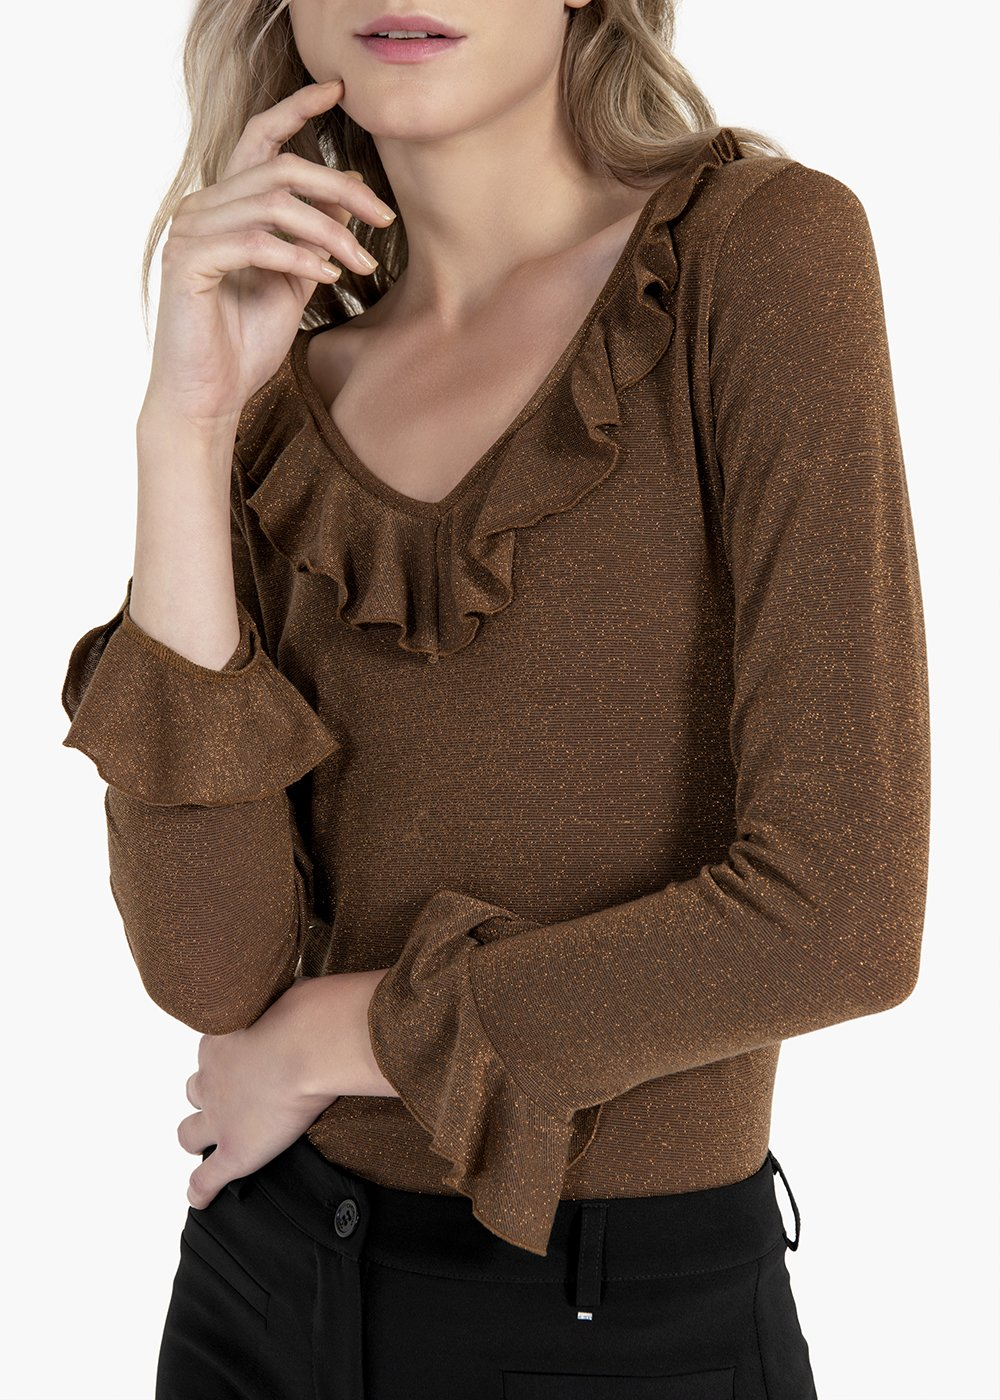 Teresa t-shirt with ruffles at the neckline and at the cuffs - Brown - Woman